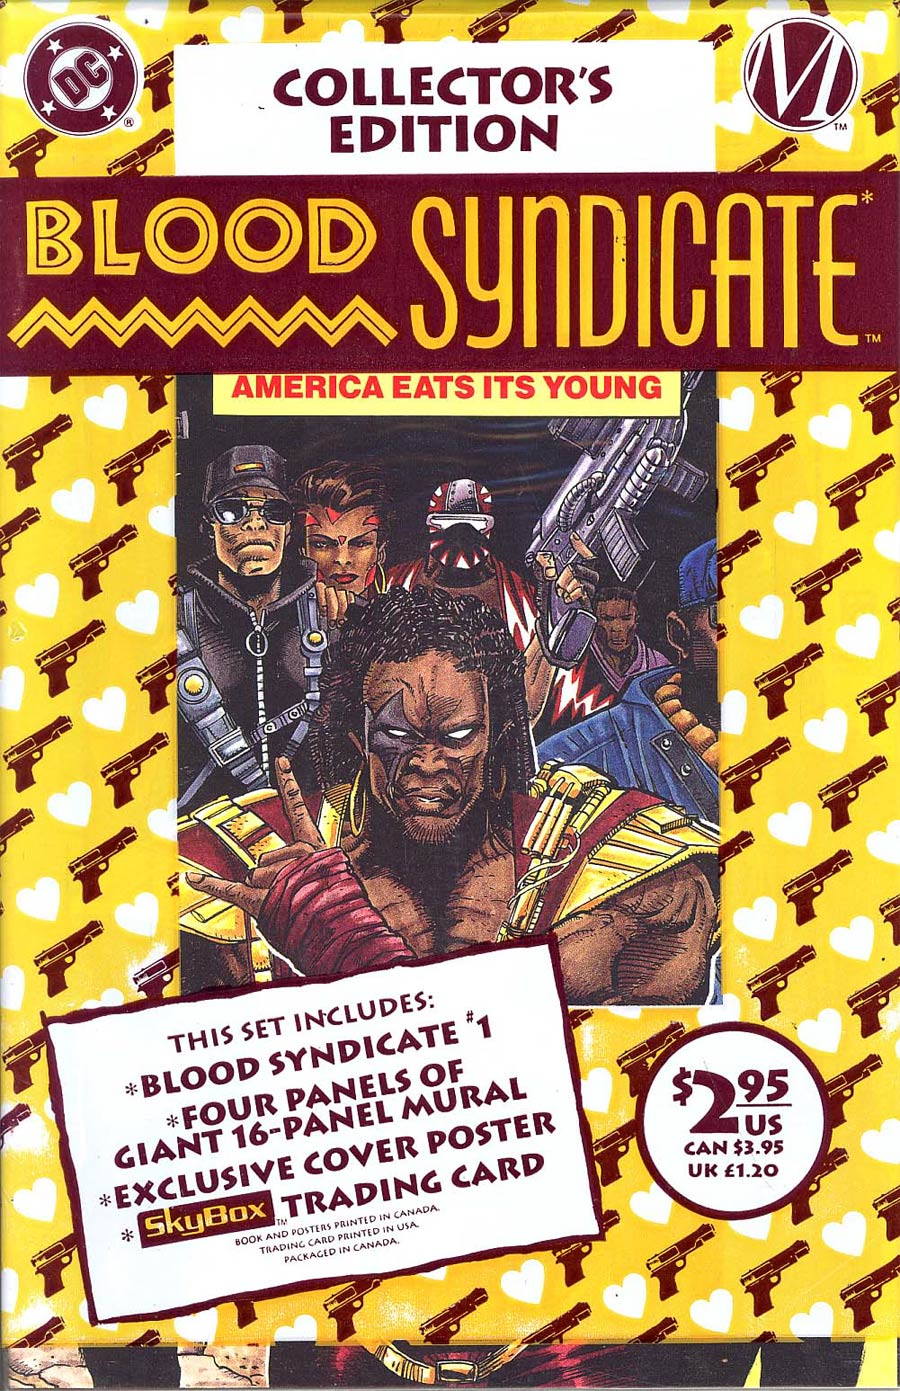 Blood Syndicate #1 Cover A Collectors Edition With Polybag